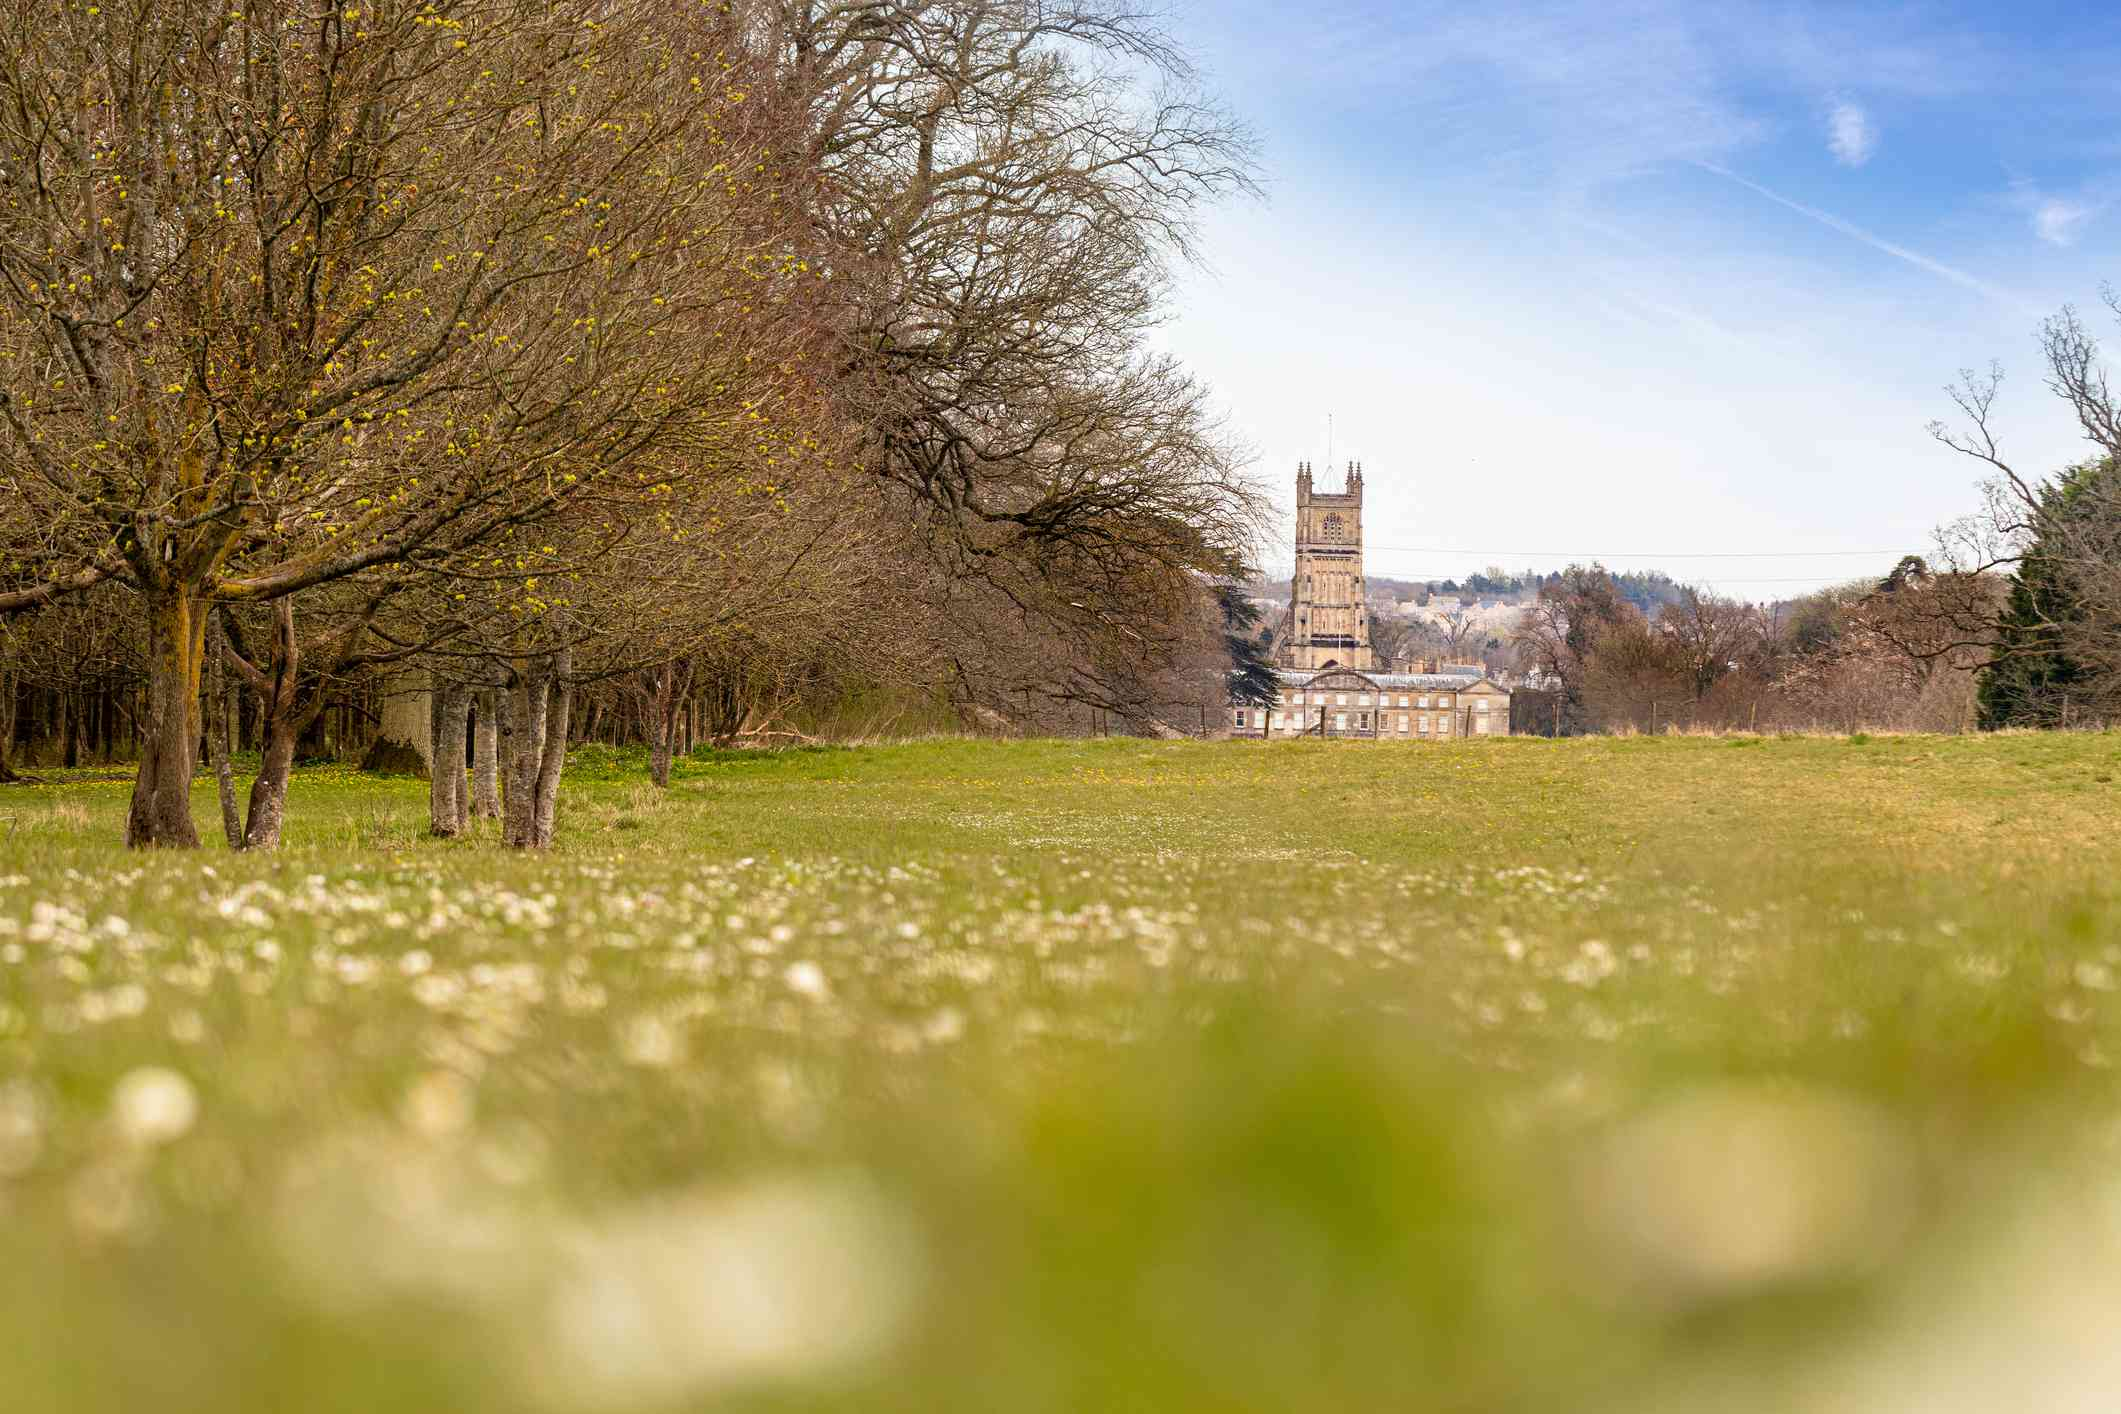 View of St John the Baptist Parish Church from Cirencester Park, Cirencester, Gloucestershire, UK. The Cotswolds on an early spring day